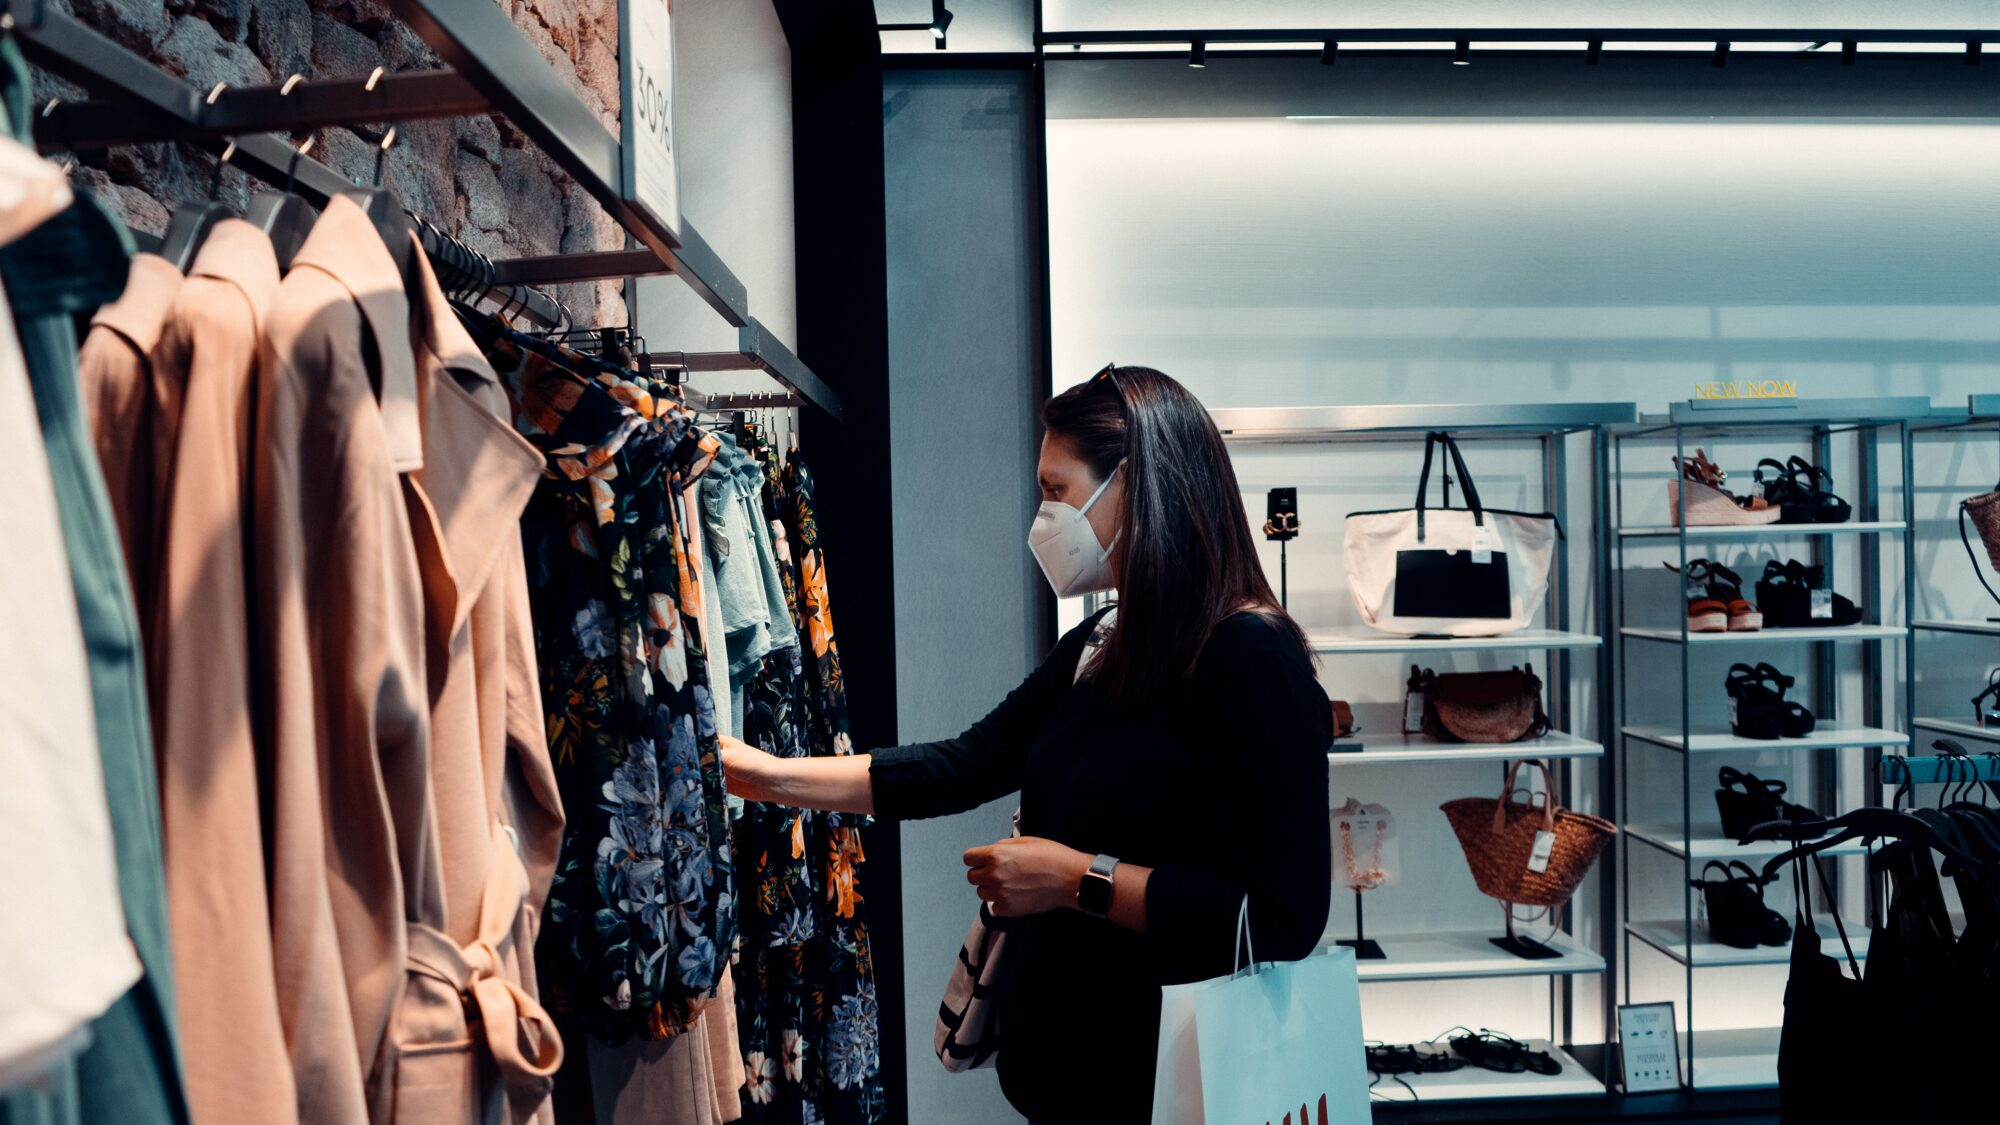 An image of a woman clothes shopping with a mask on